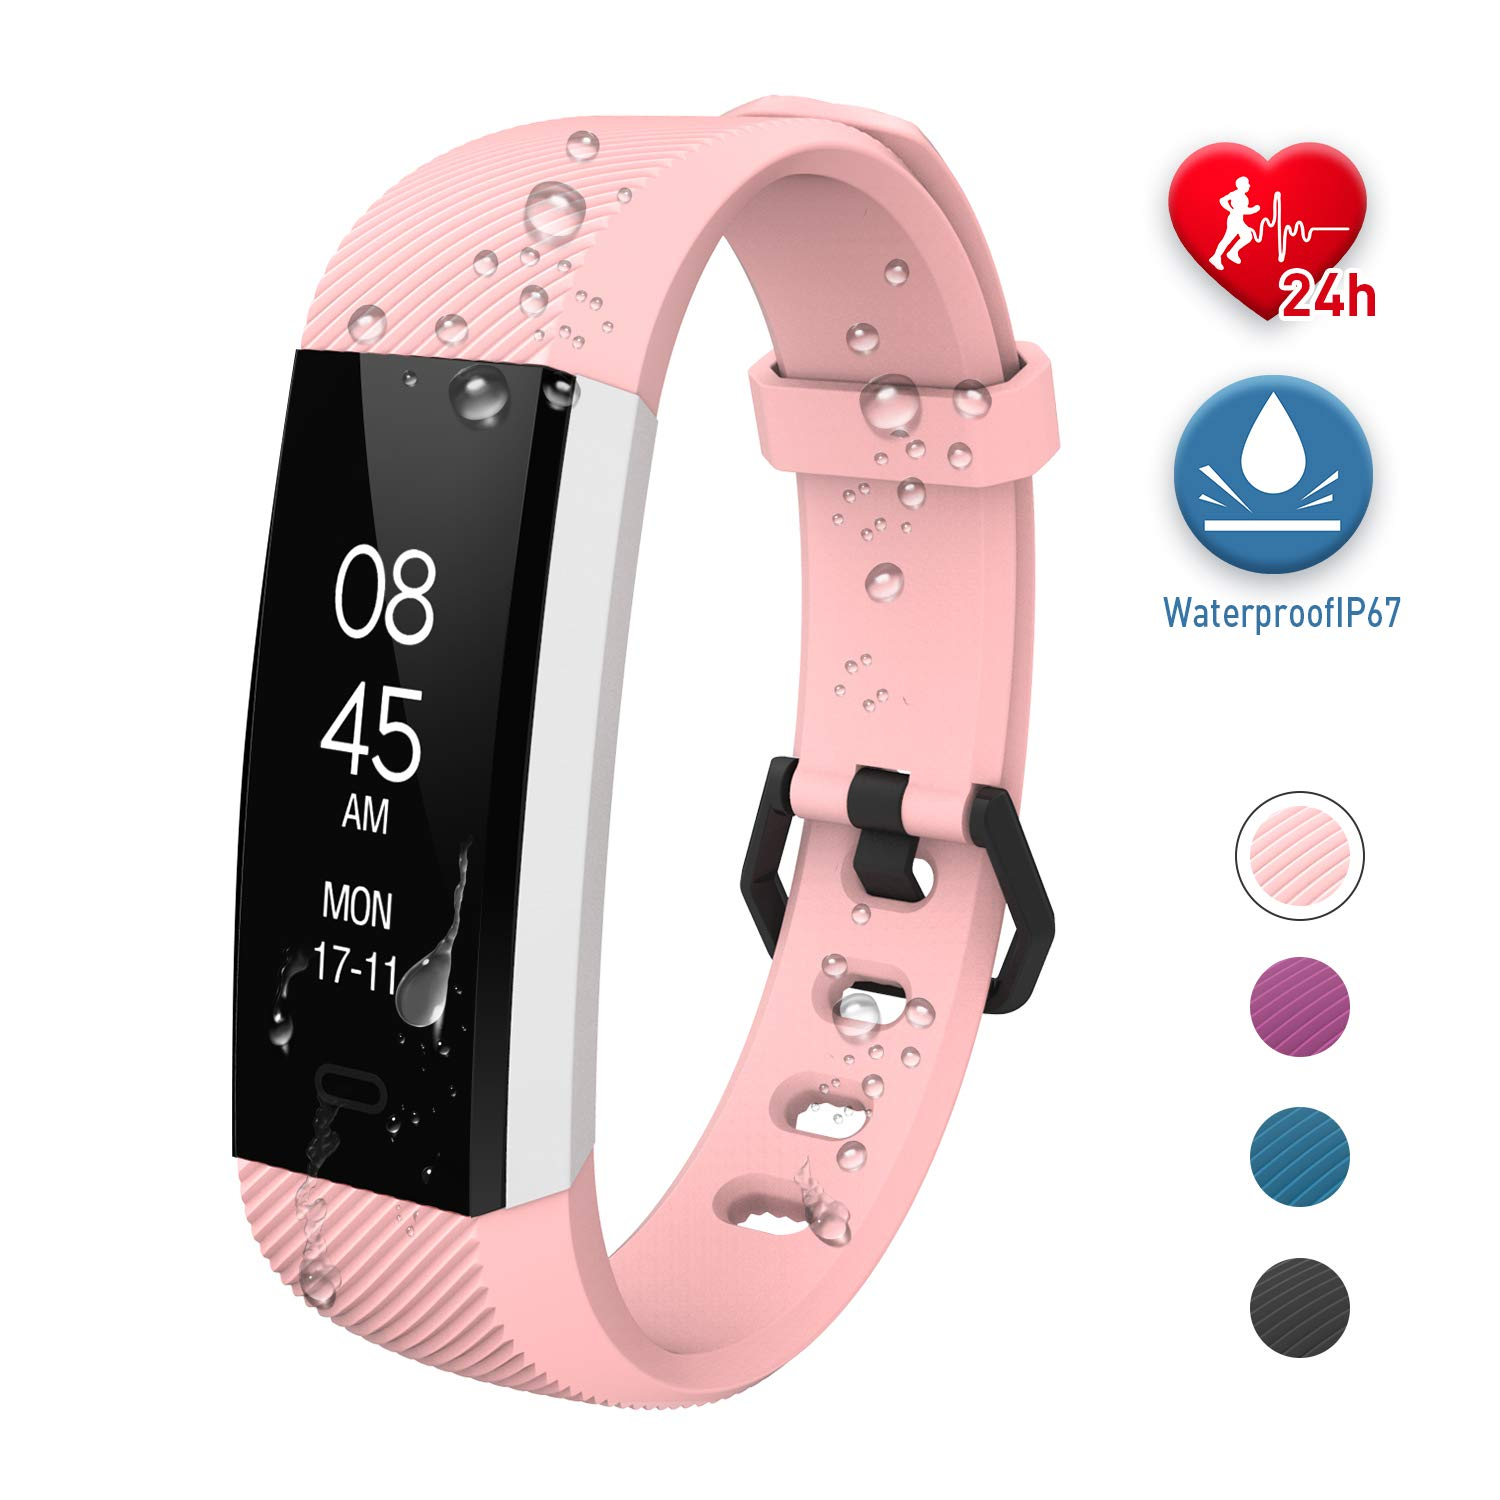 Fitpolo Fitness Tracker Waterproof with Heart Rate Monitor, Activity Tracker Smart Watch with Sleep Monitor, Pedometer for Kids Men Women